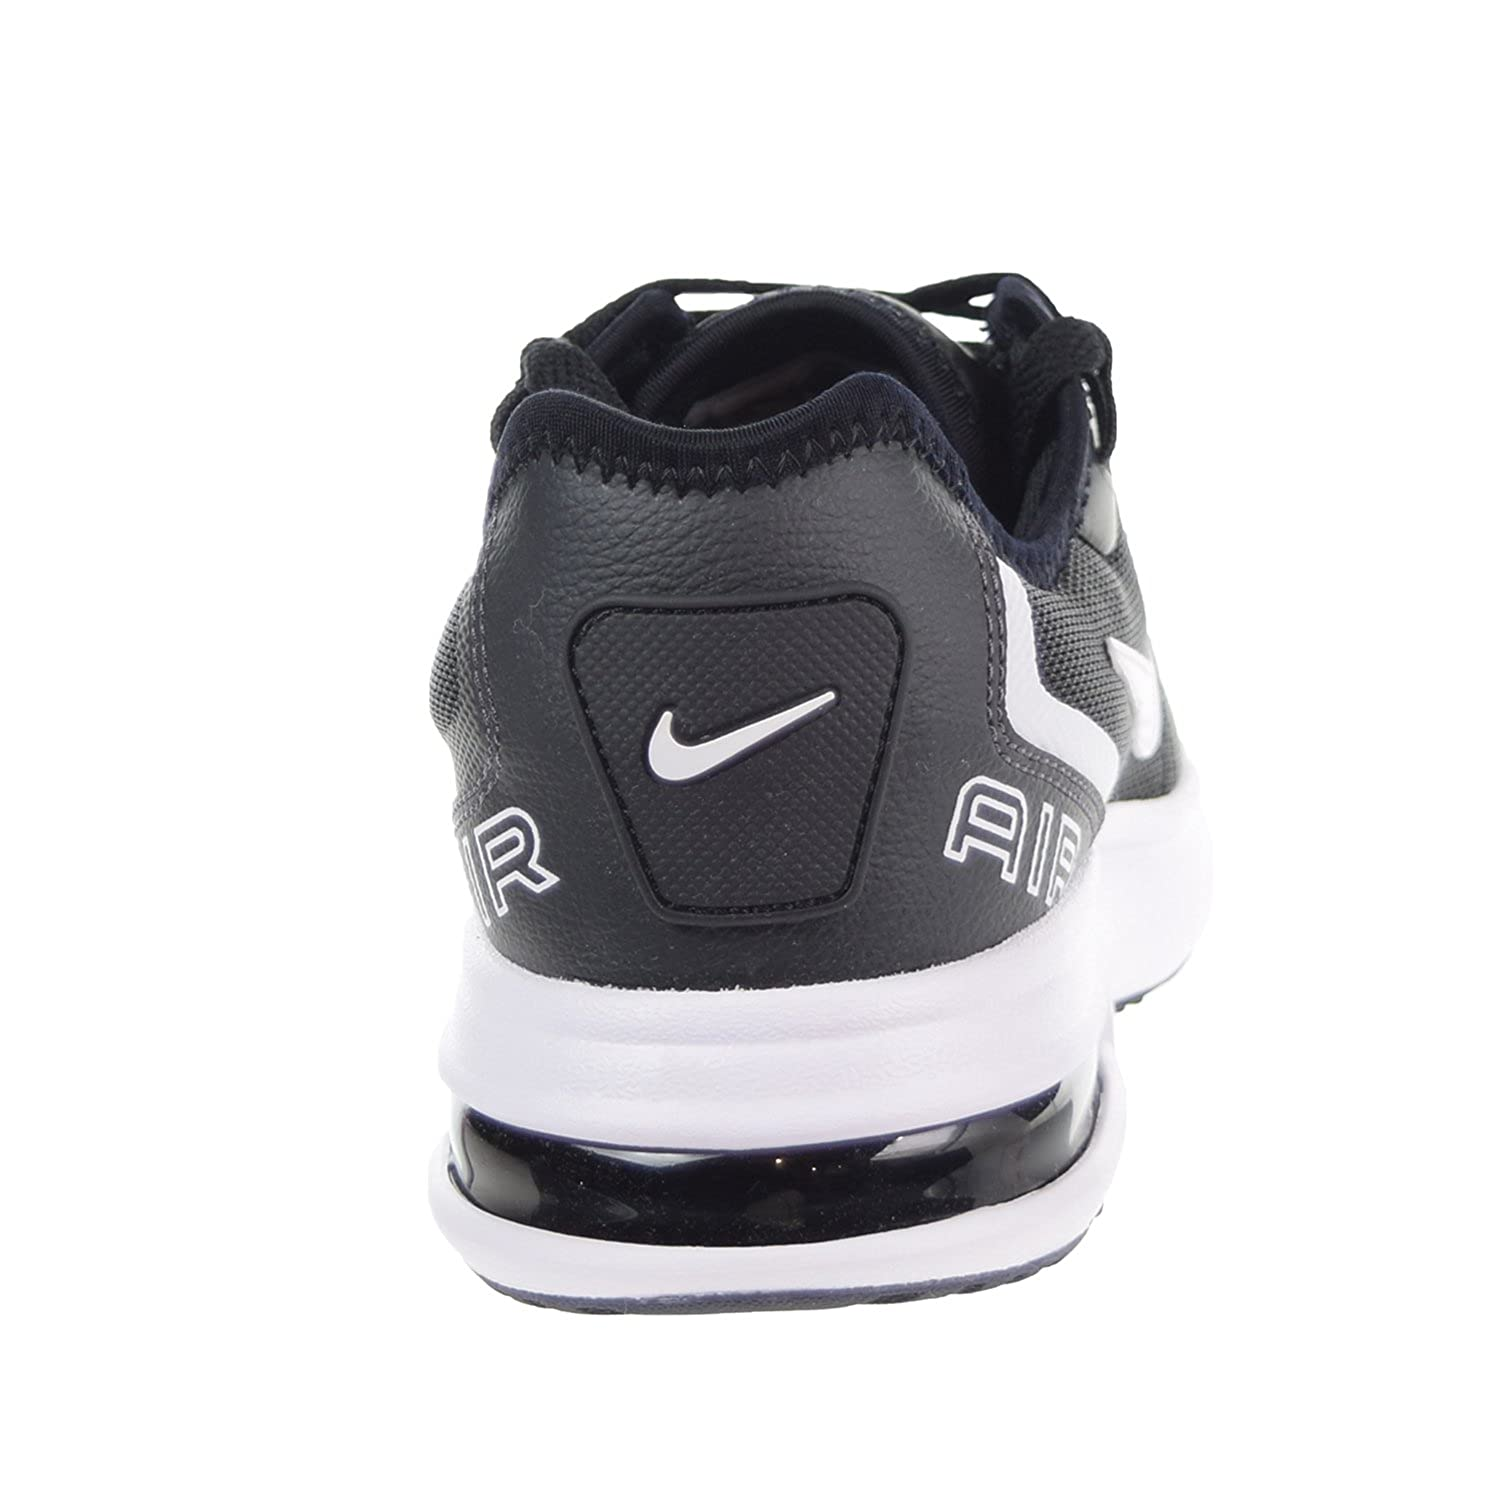 new arrival a4c5d 202de sale nike air max 95 junior noir quarterback 437b9 ef044